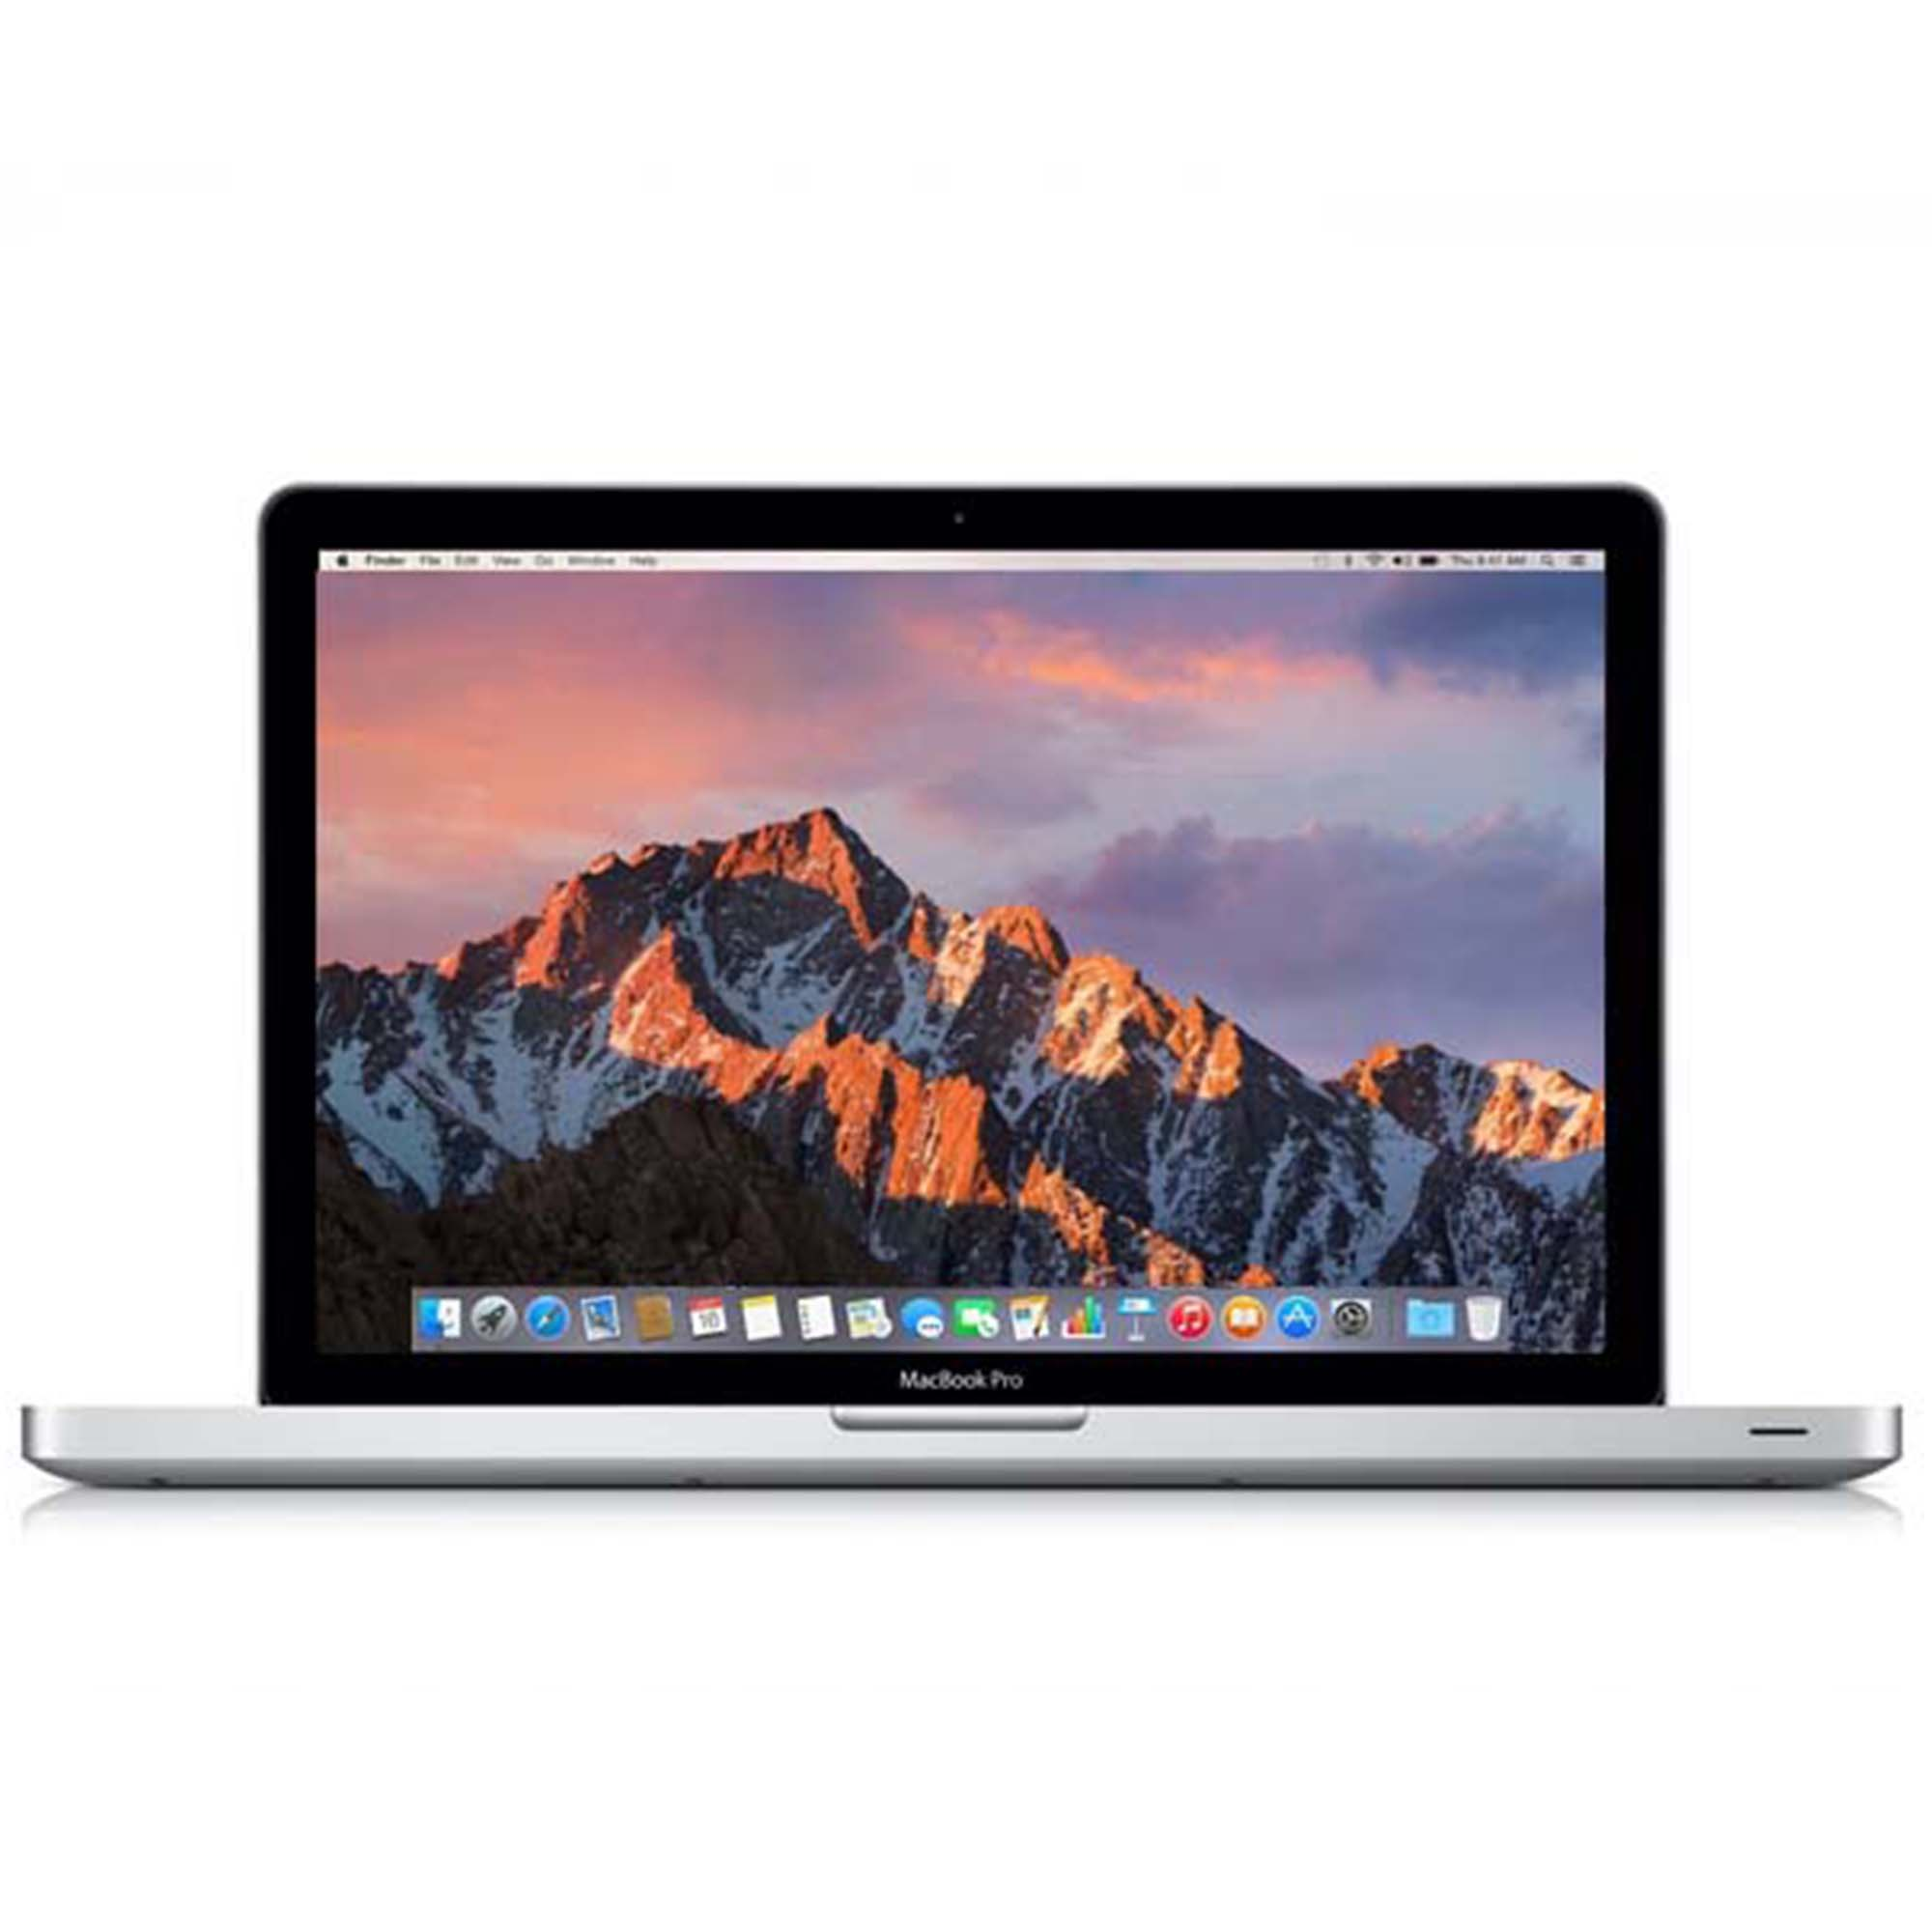 Apple MacBook Pro 15.4-Inch Laptop Intel QuadCore i7 2.0GHz 1TB SSHD / 16GB DDR3 Memory - Refurbished